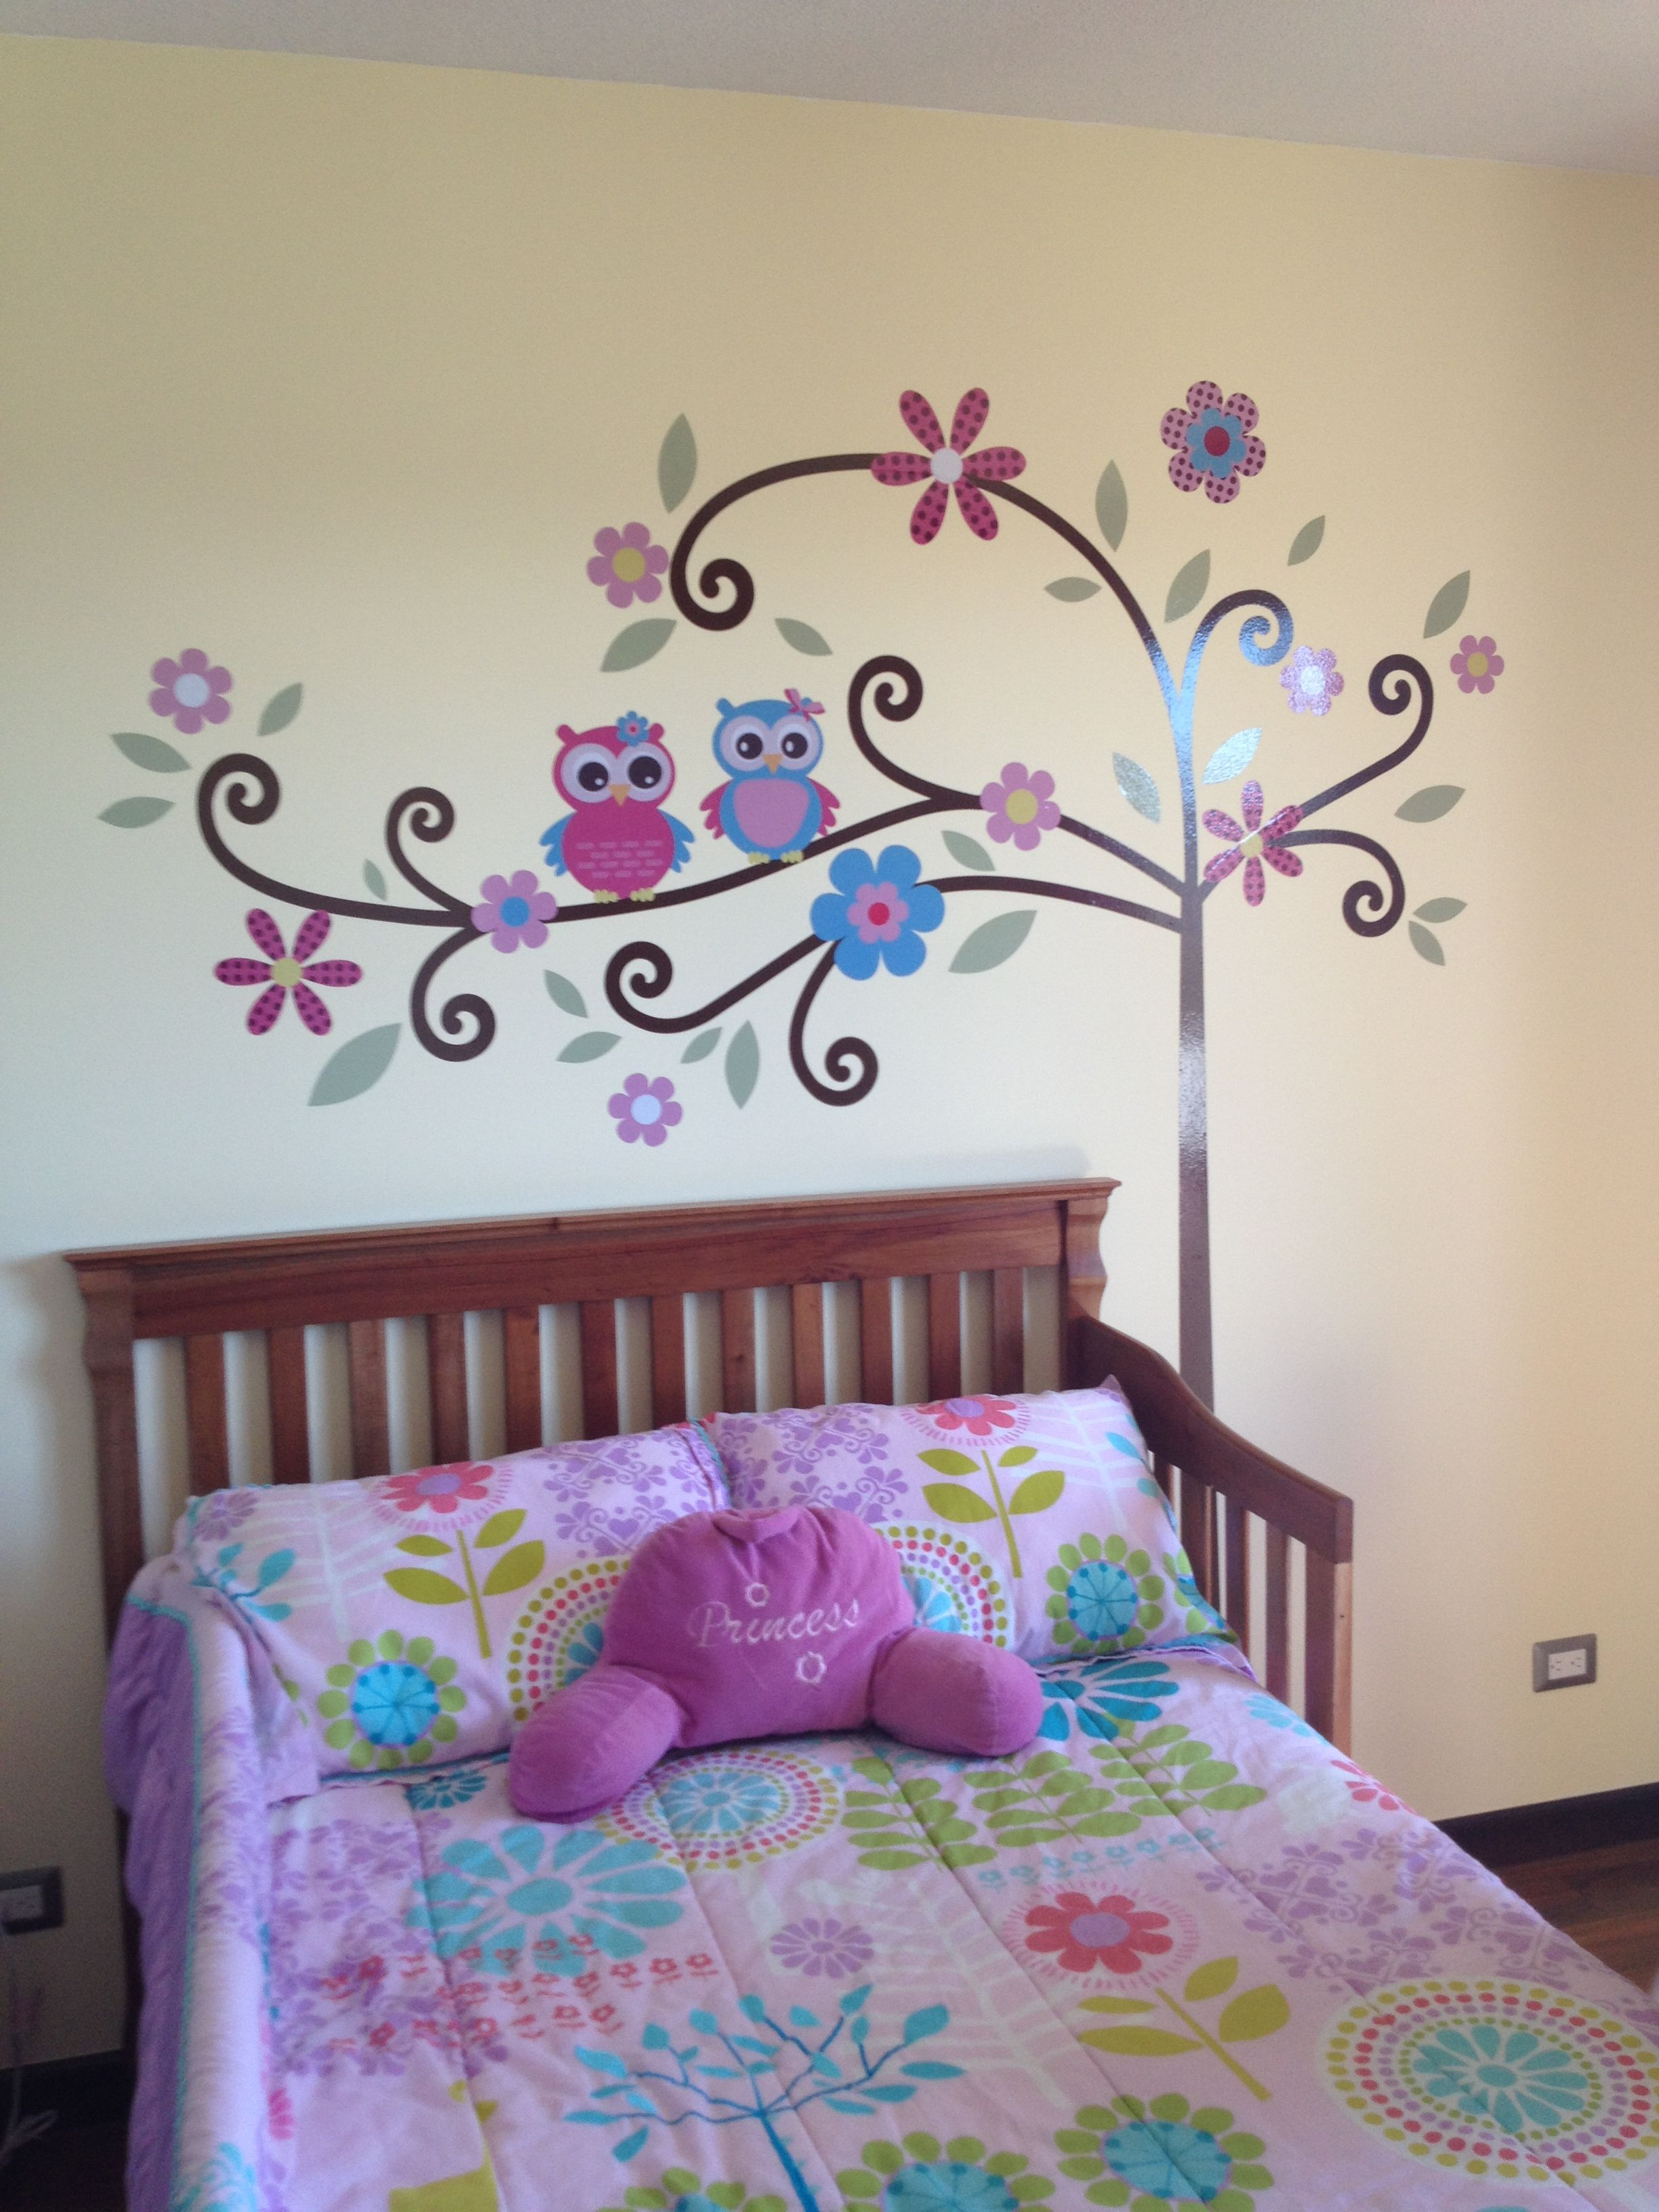 Arbol cuarto de ni a created by wall art decoraci n de for Decoracion de habitacion de bebe nina